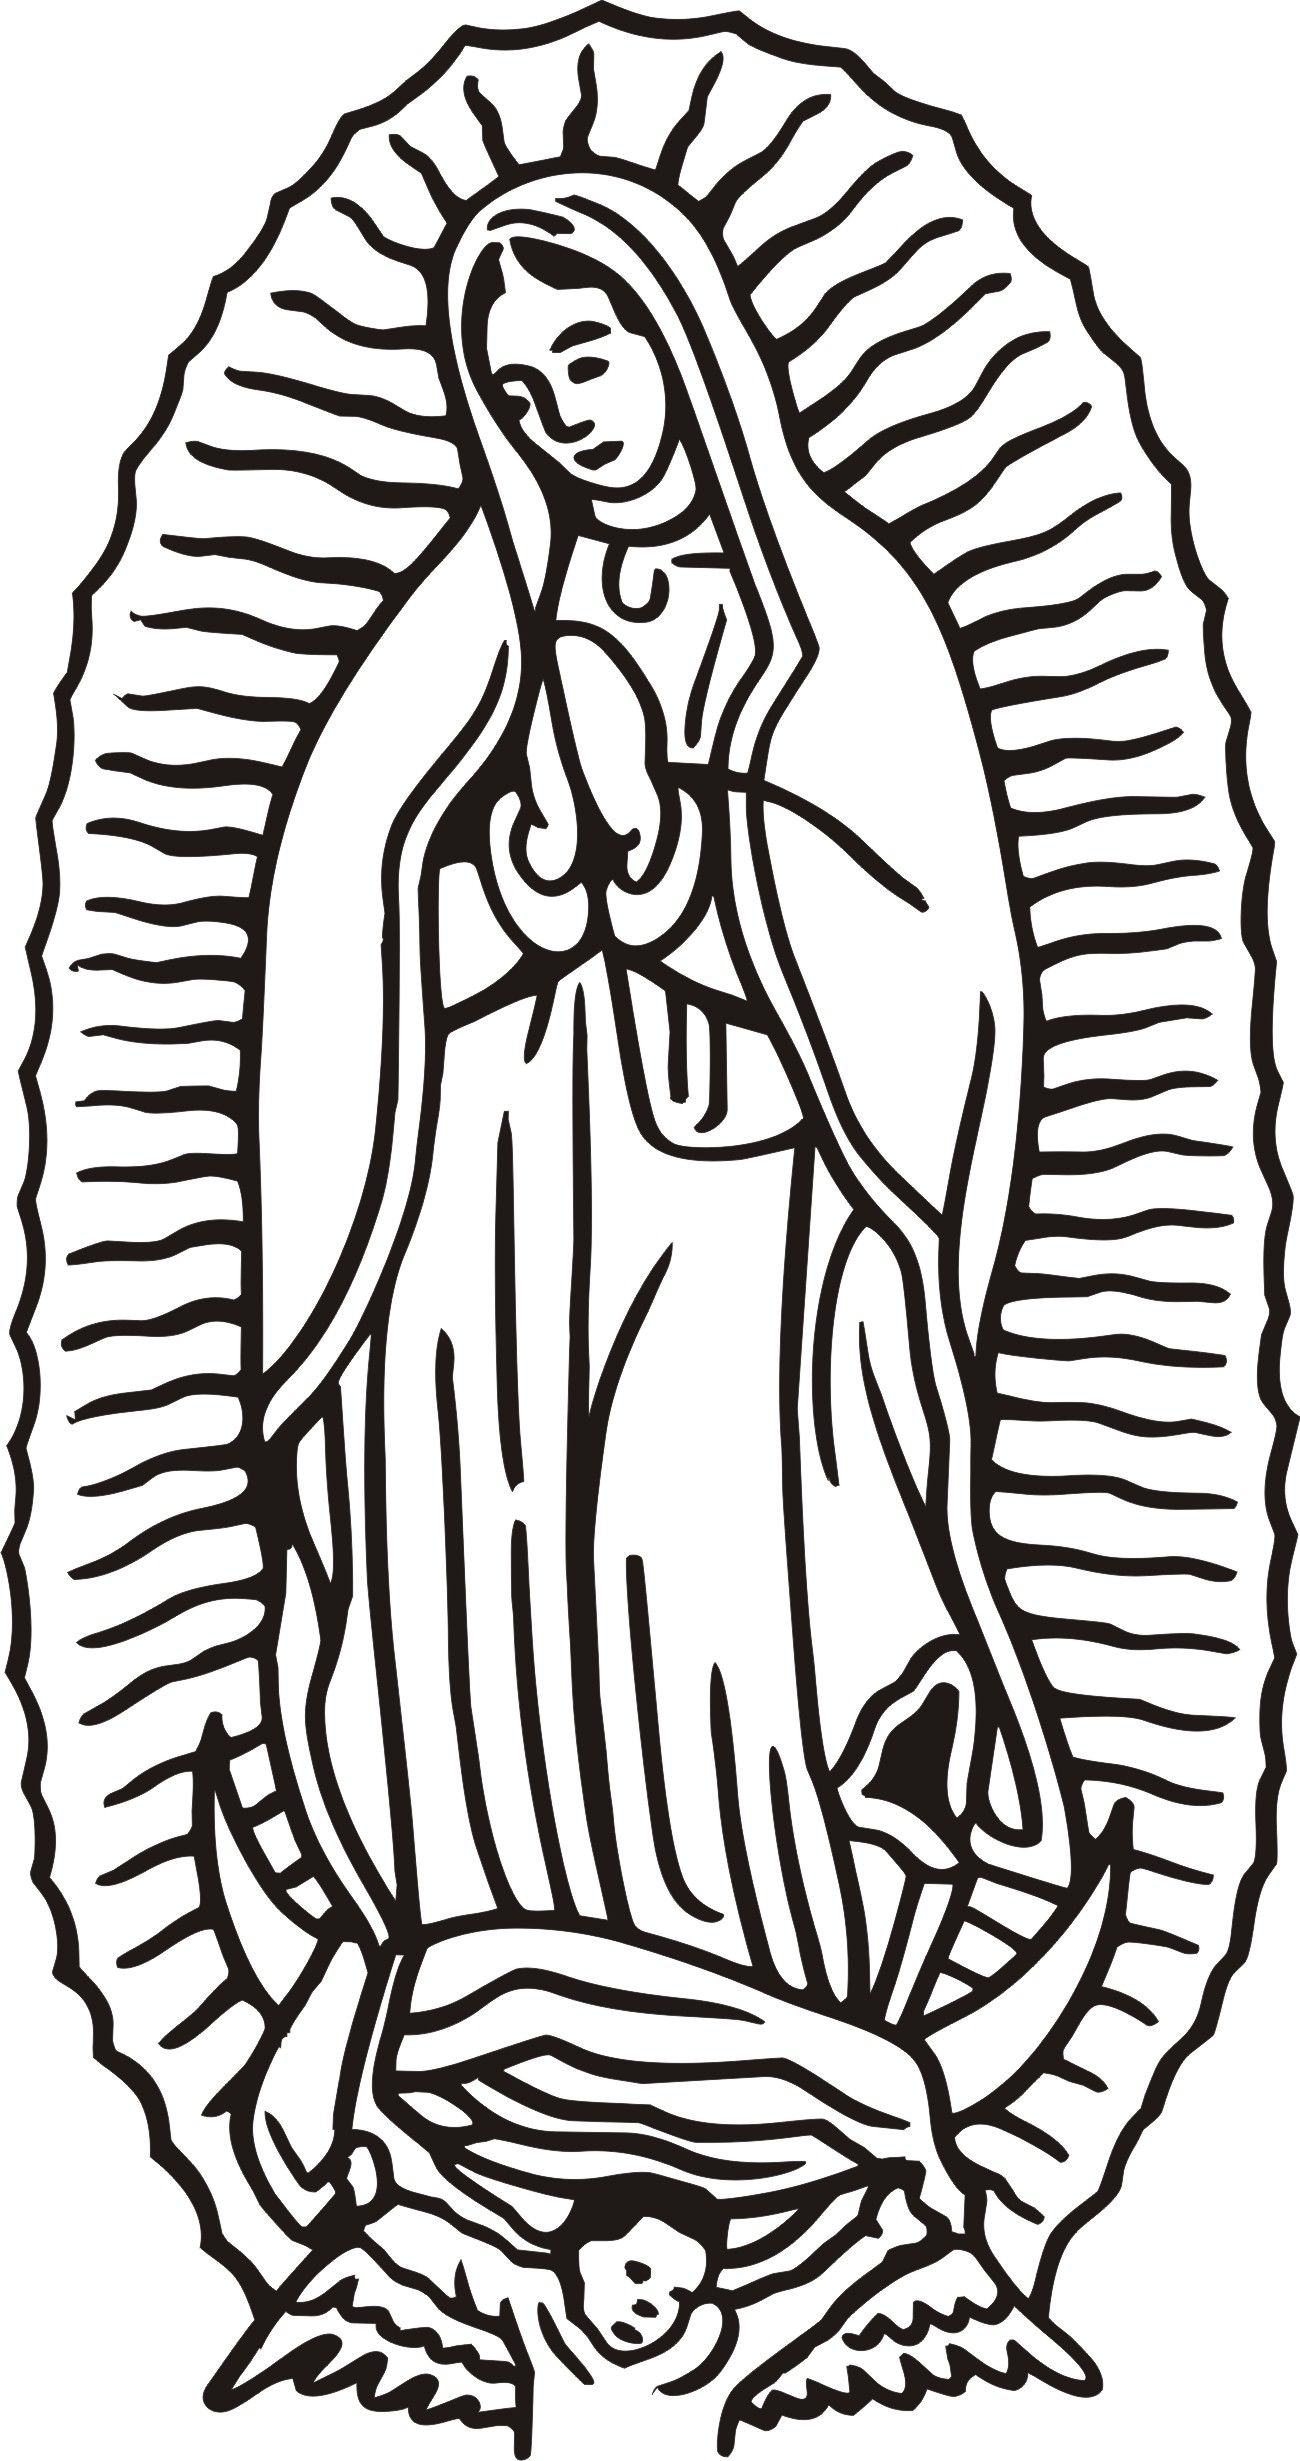 42 Awesome free our lady of guadalupe clip art | zibbet ideas ...